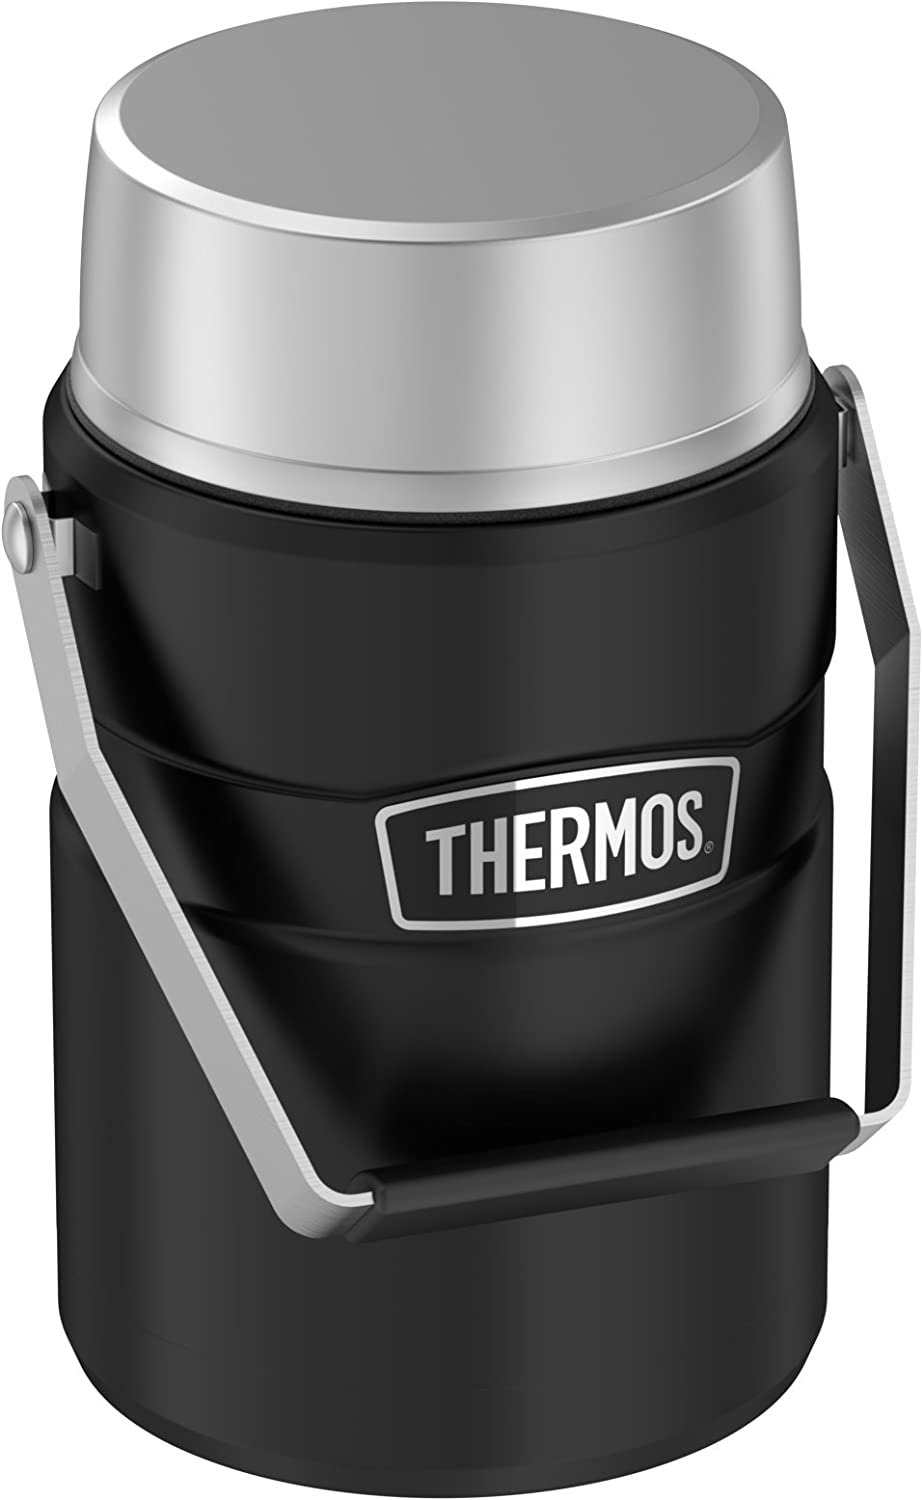 Thermos Stainless King 47 Ounce Vacuum Insulated Food Jar with 2 Inserts, Matte Black